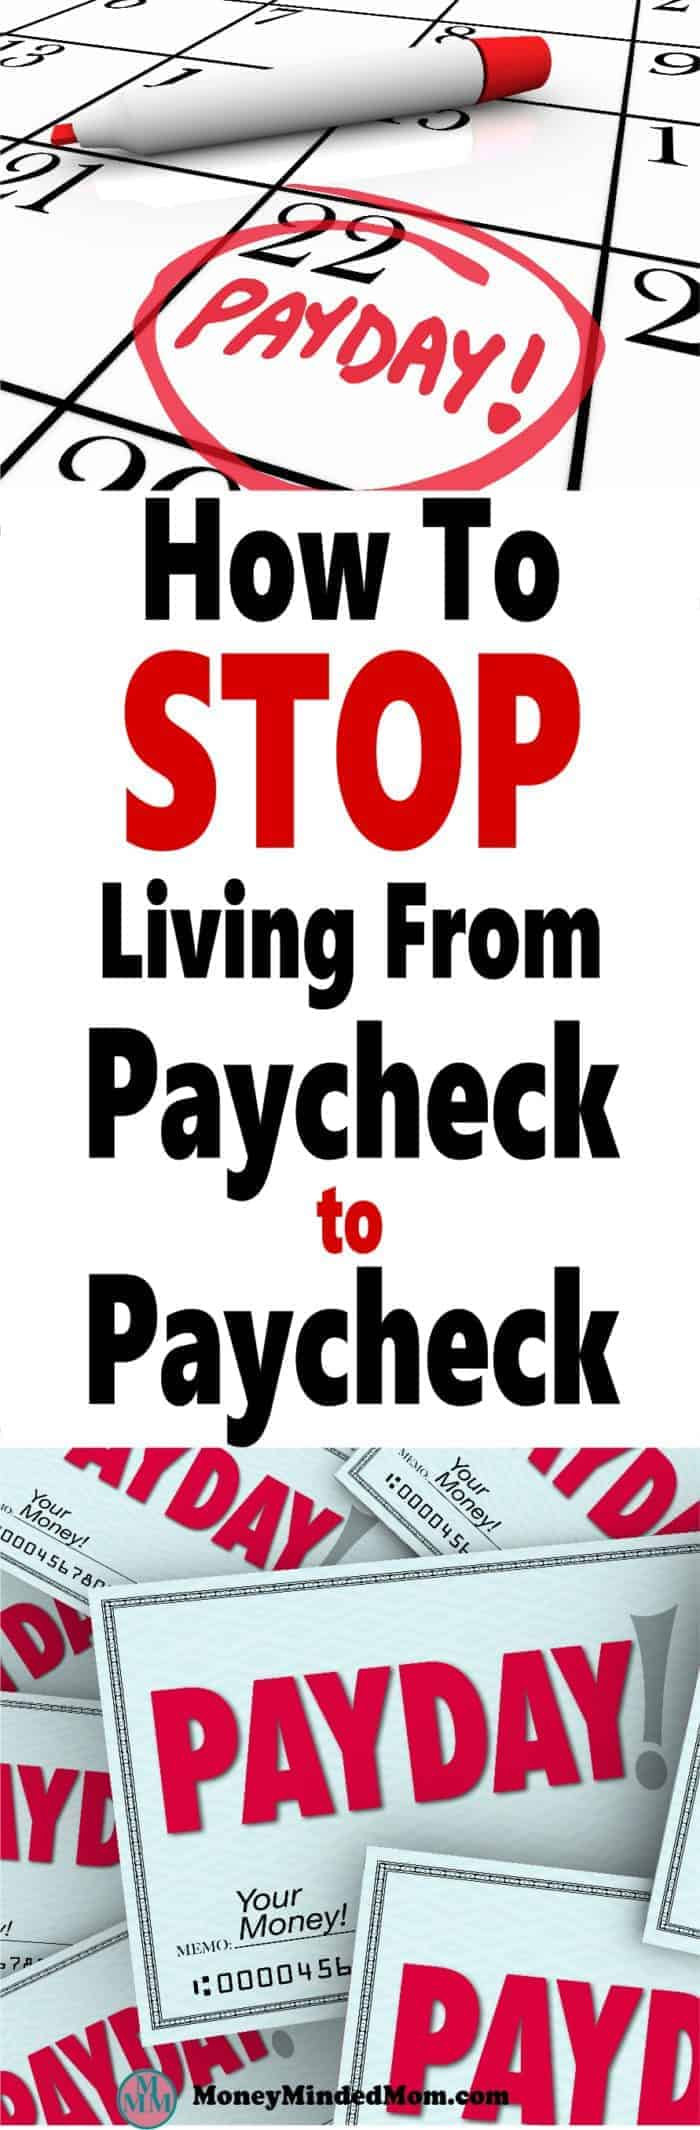 How to Stop Living Paycheck to Paycheck ~ Living paycheck to paycheck is no way to live. You need to start living within your means and find ways to save money. Luckily, I've got your back, read on to finally be free of your next payday. money | frugal living | save money | finance | paycheck to paycheck | manage money #money #finance #paycheck #makemoney